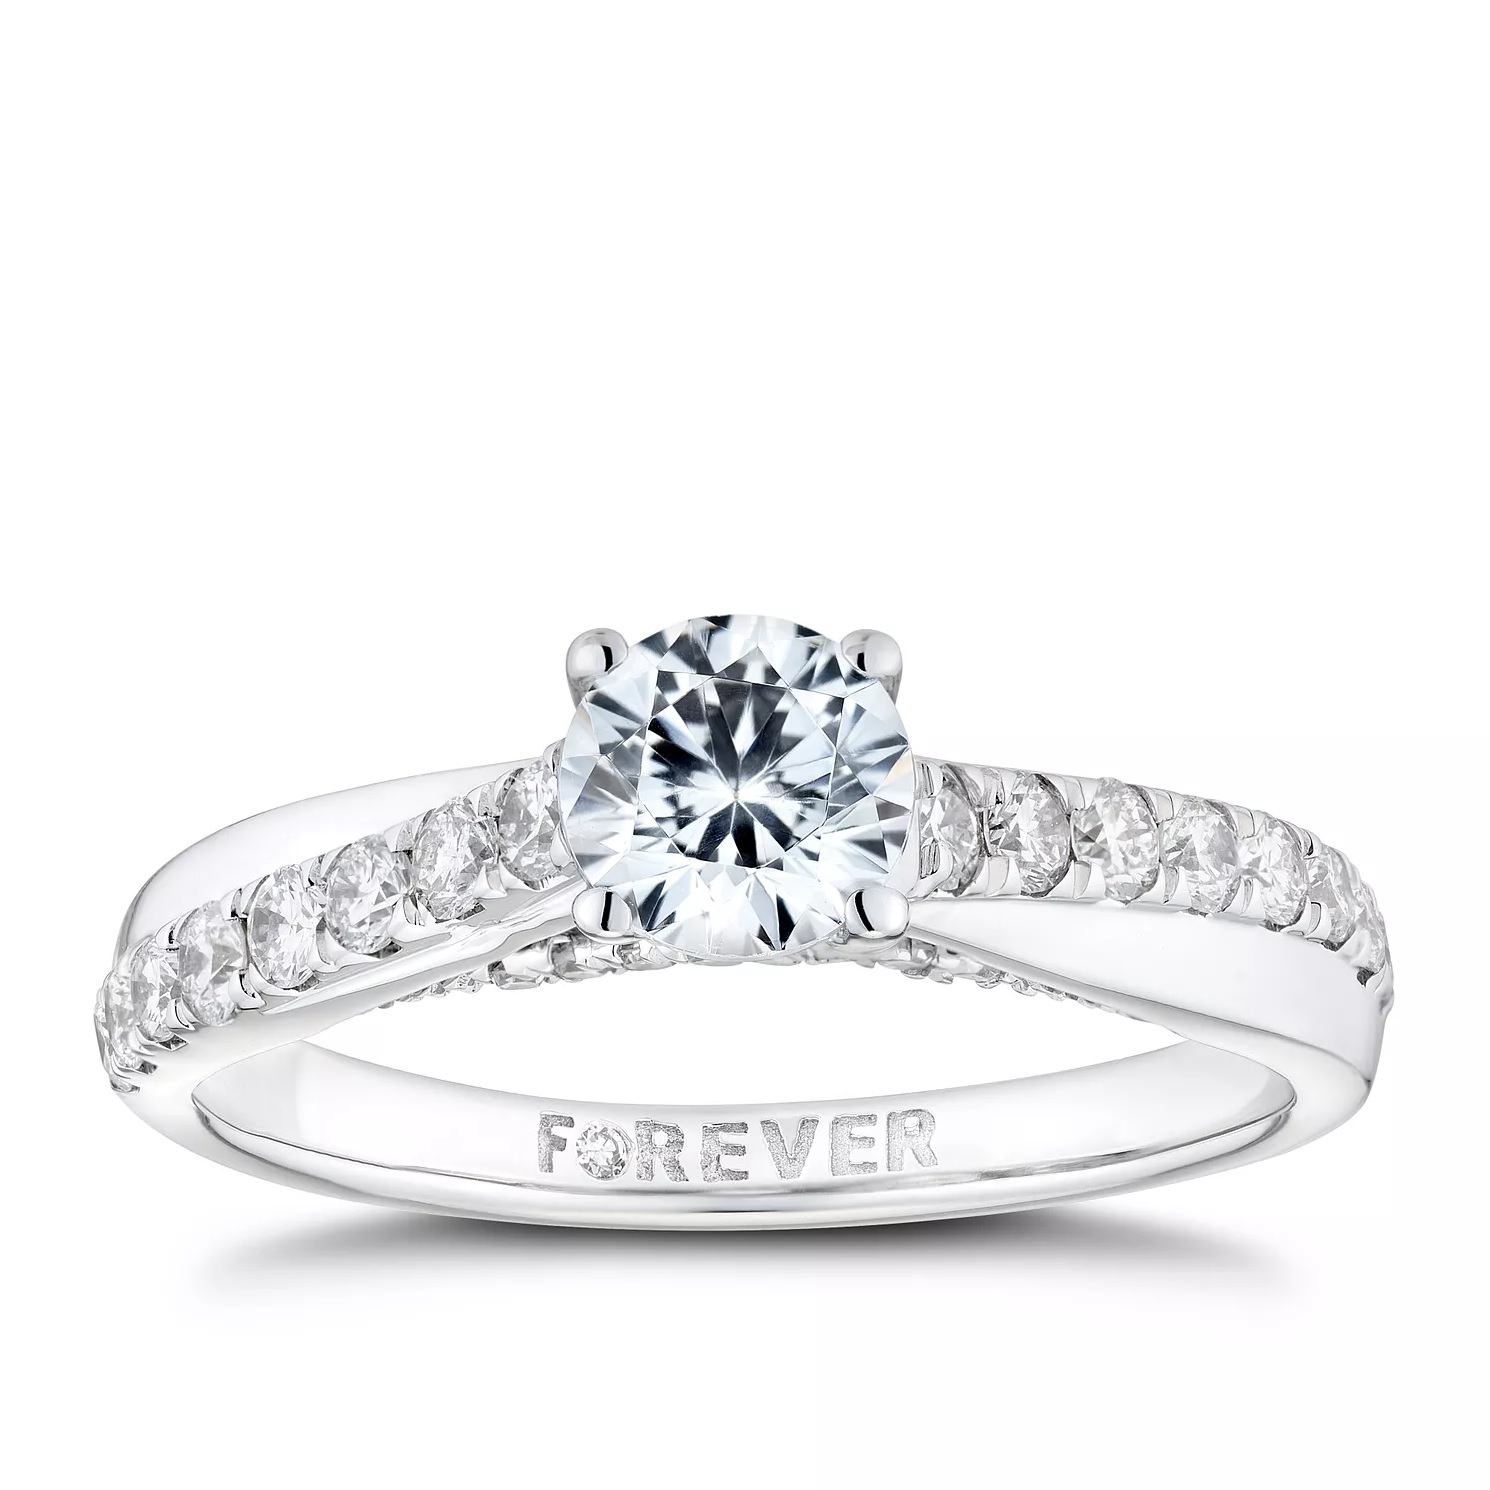 2fe79abad Black Friday Engagement Ring Sales For Every Budget